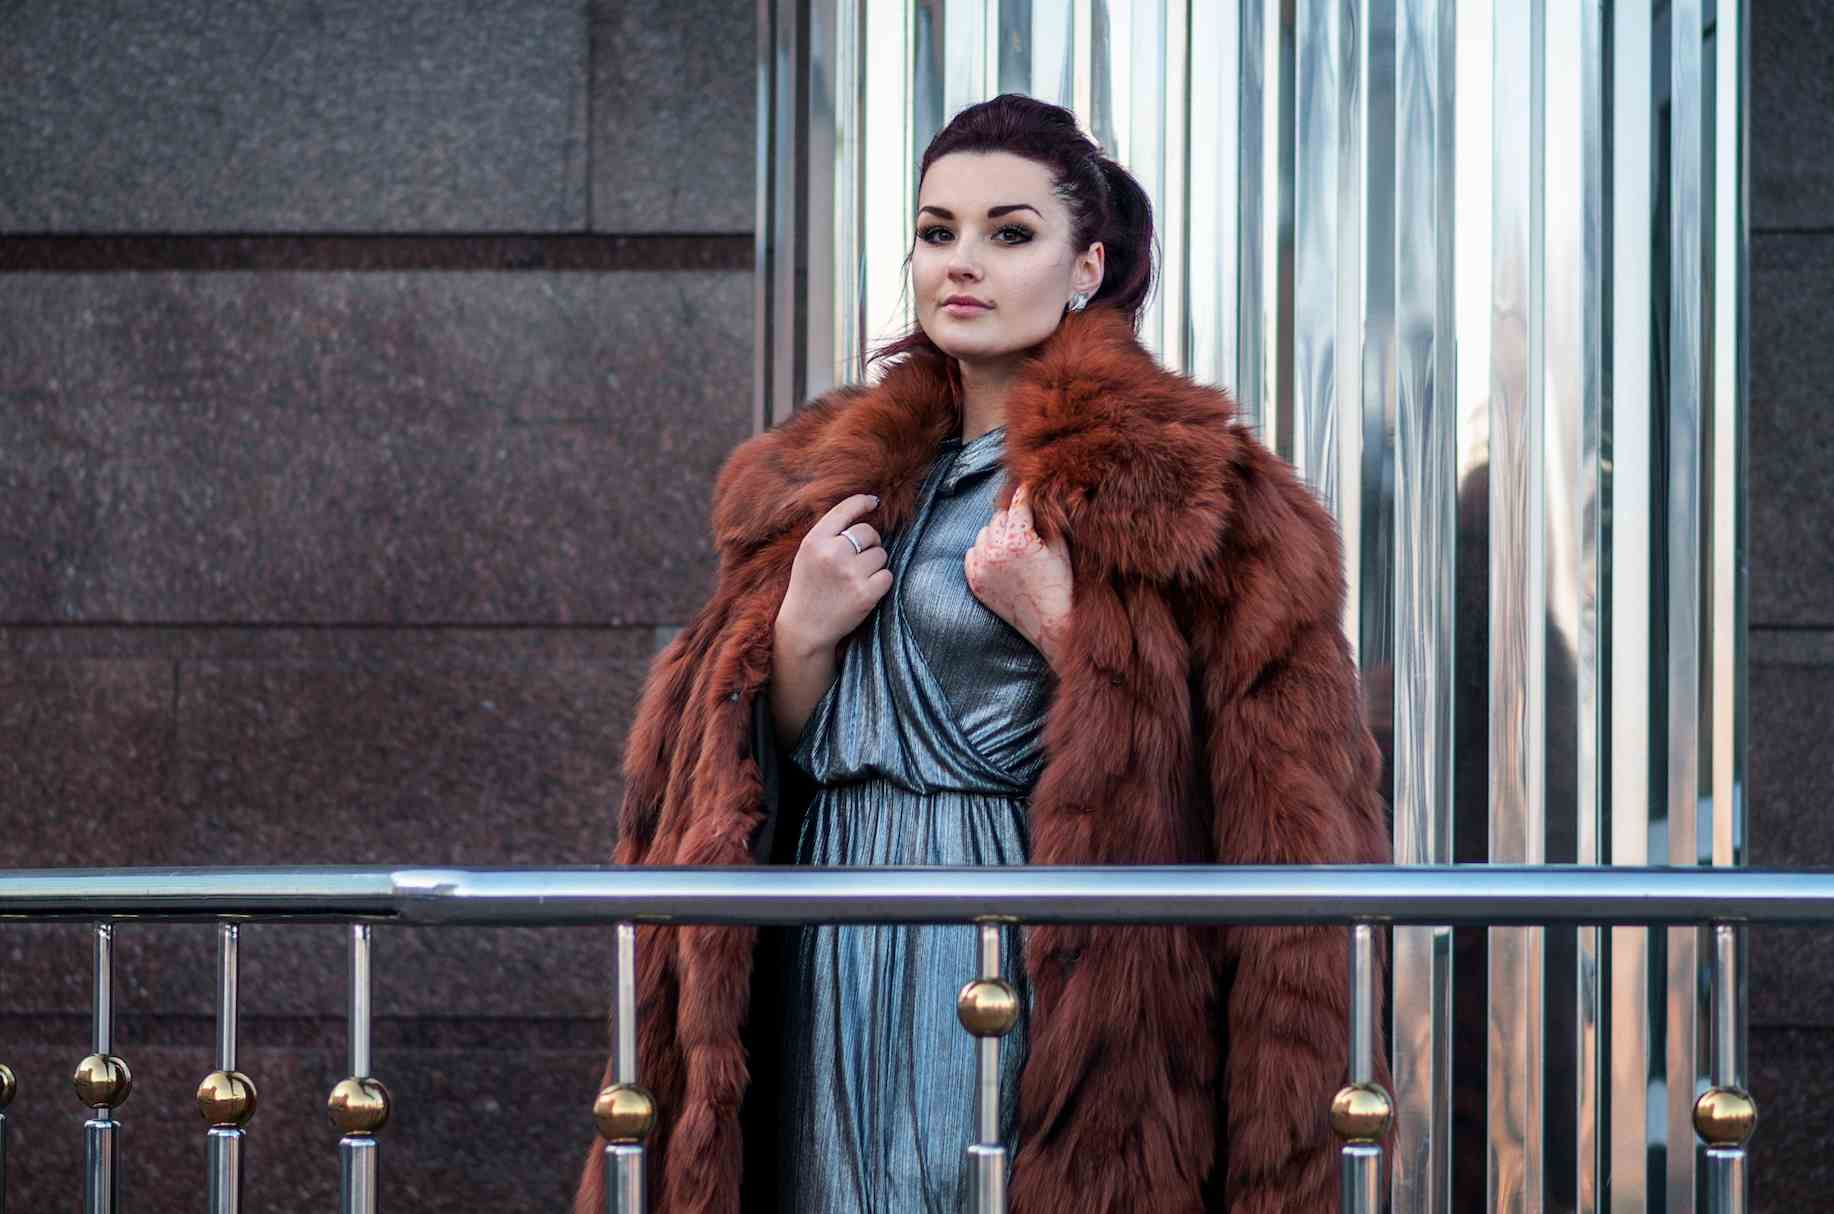 woman in a fur coat